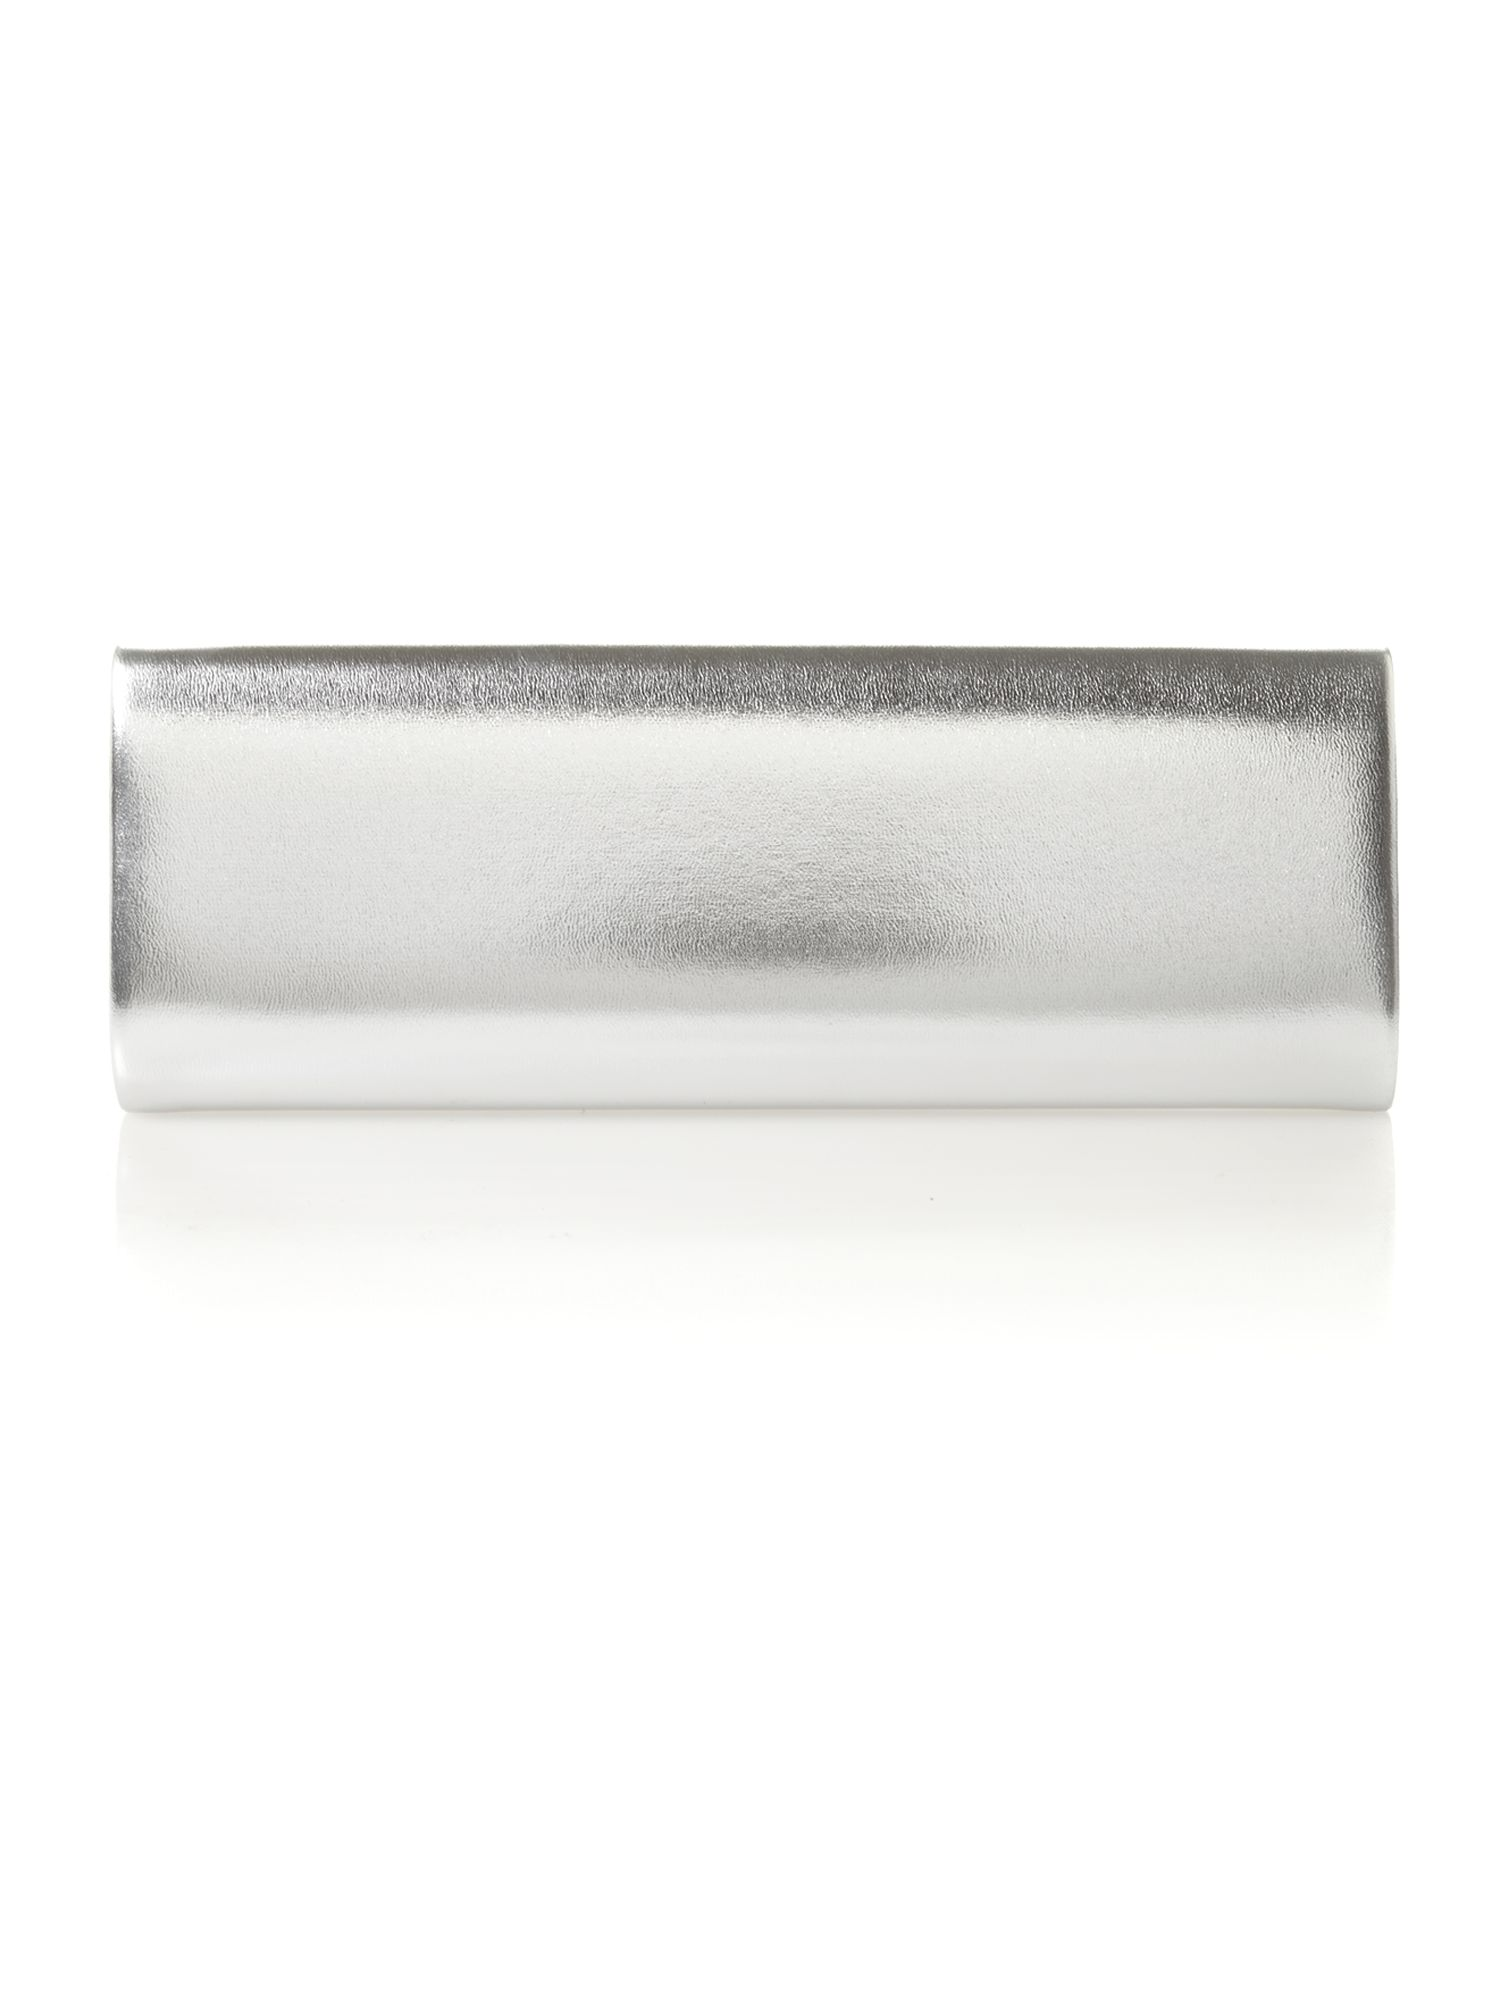 Grey classic foldover clutch bag